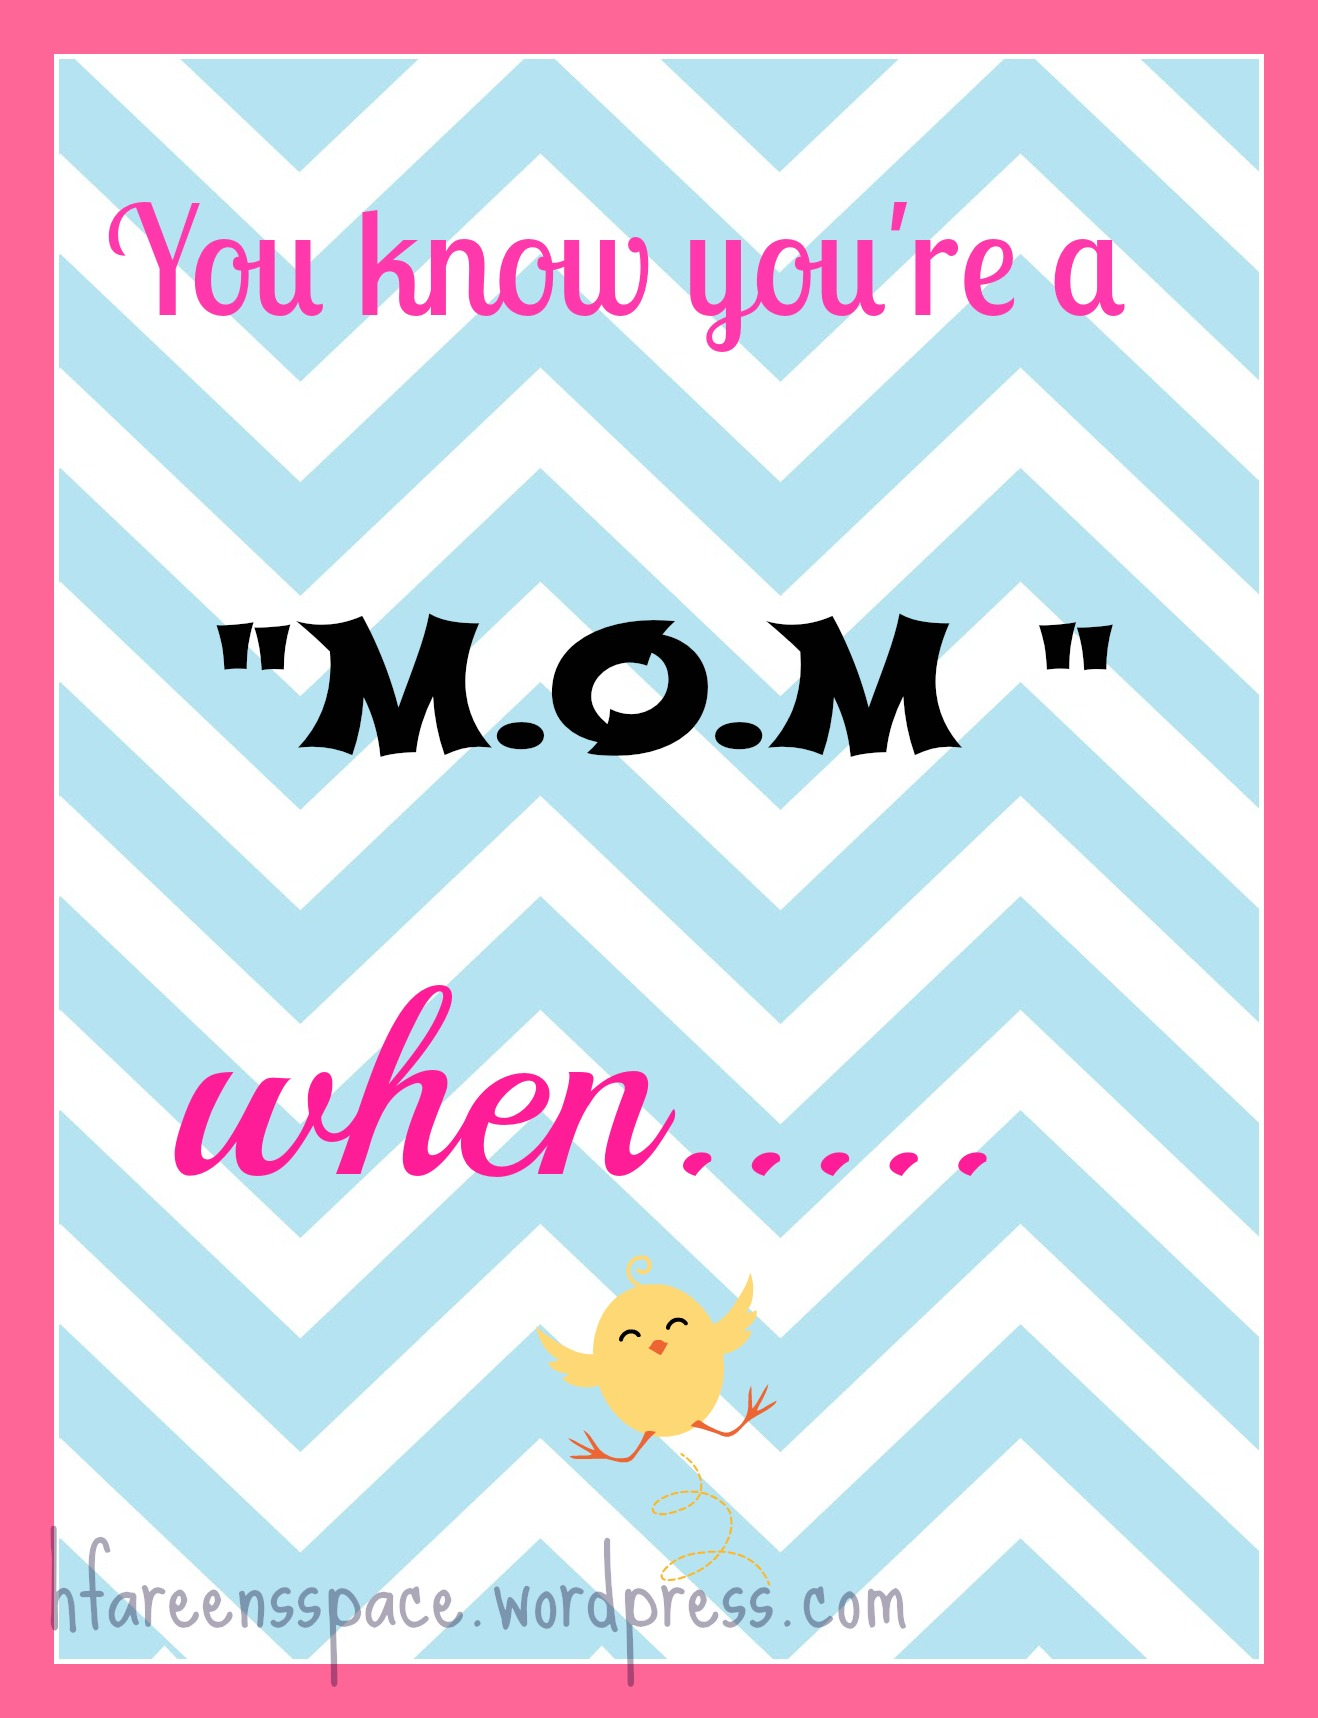 You know you are a mom when….